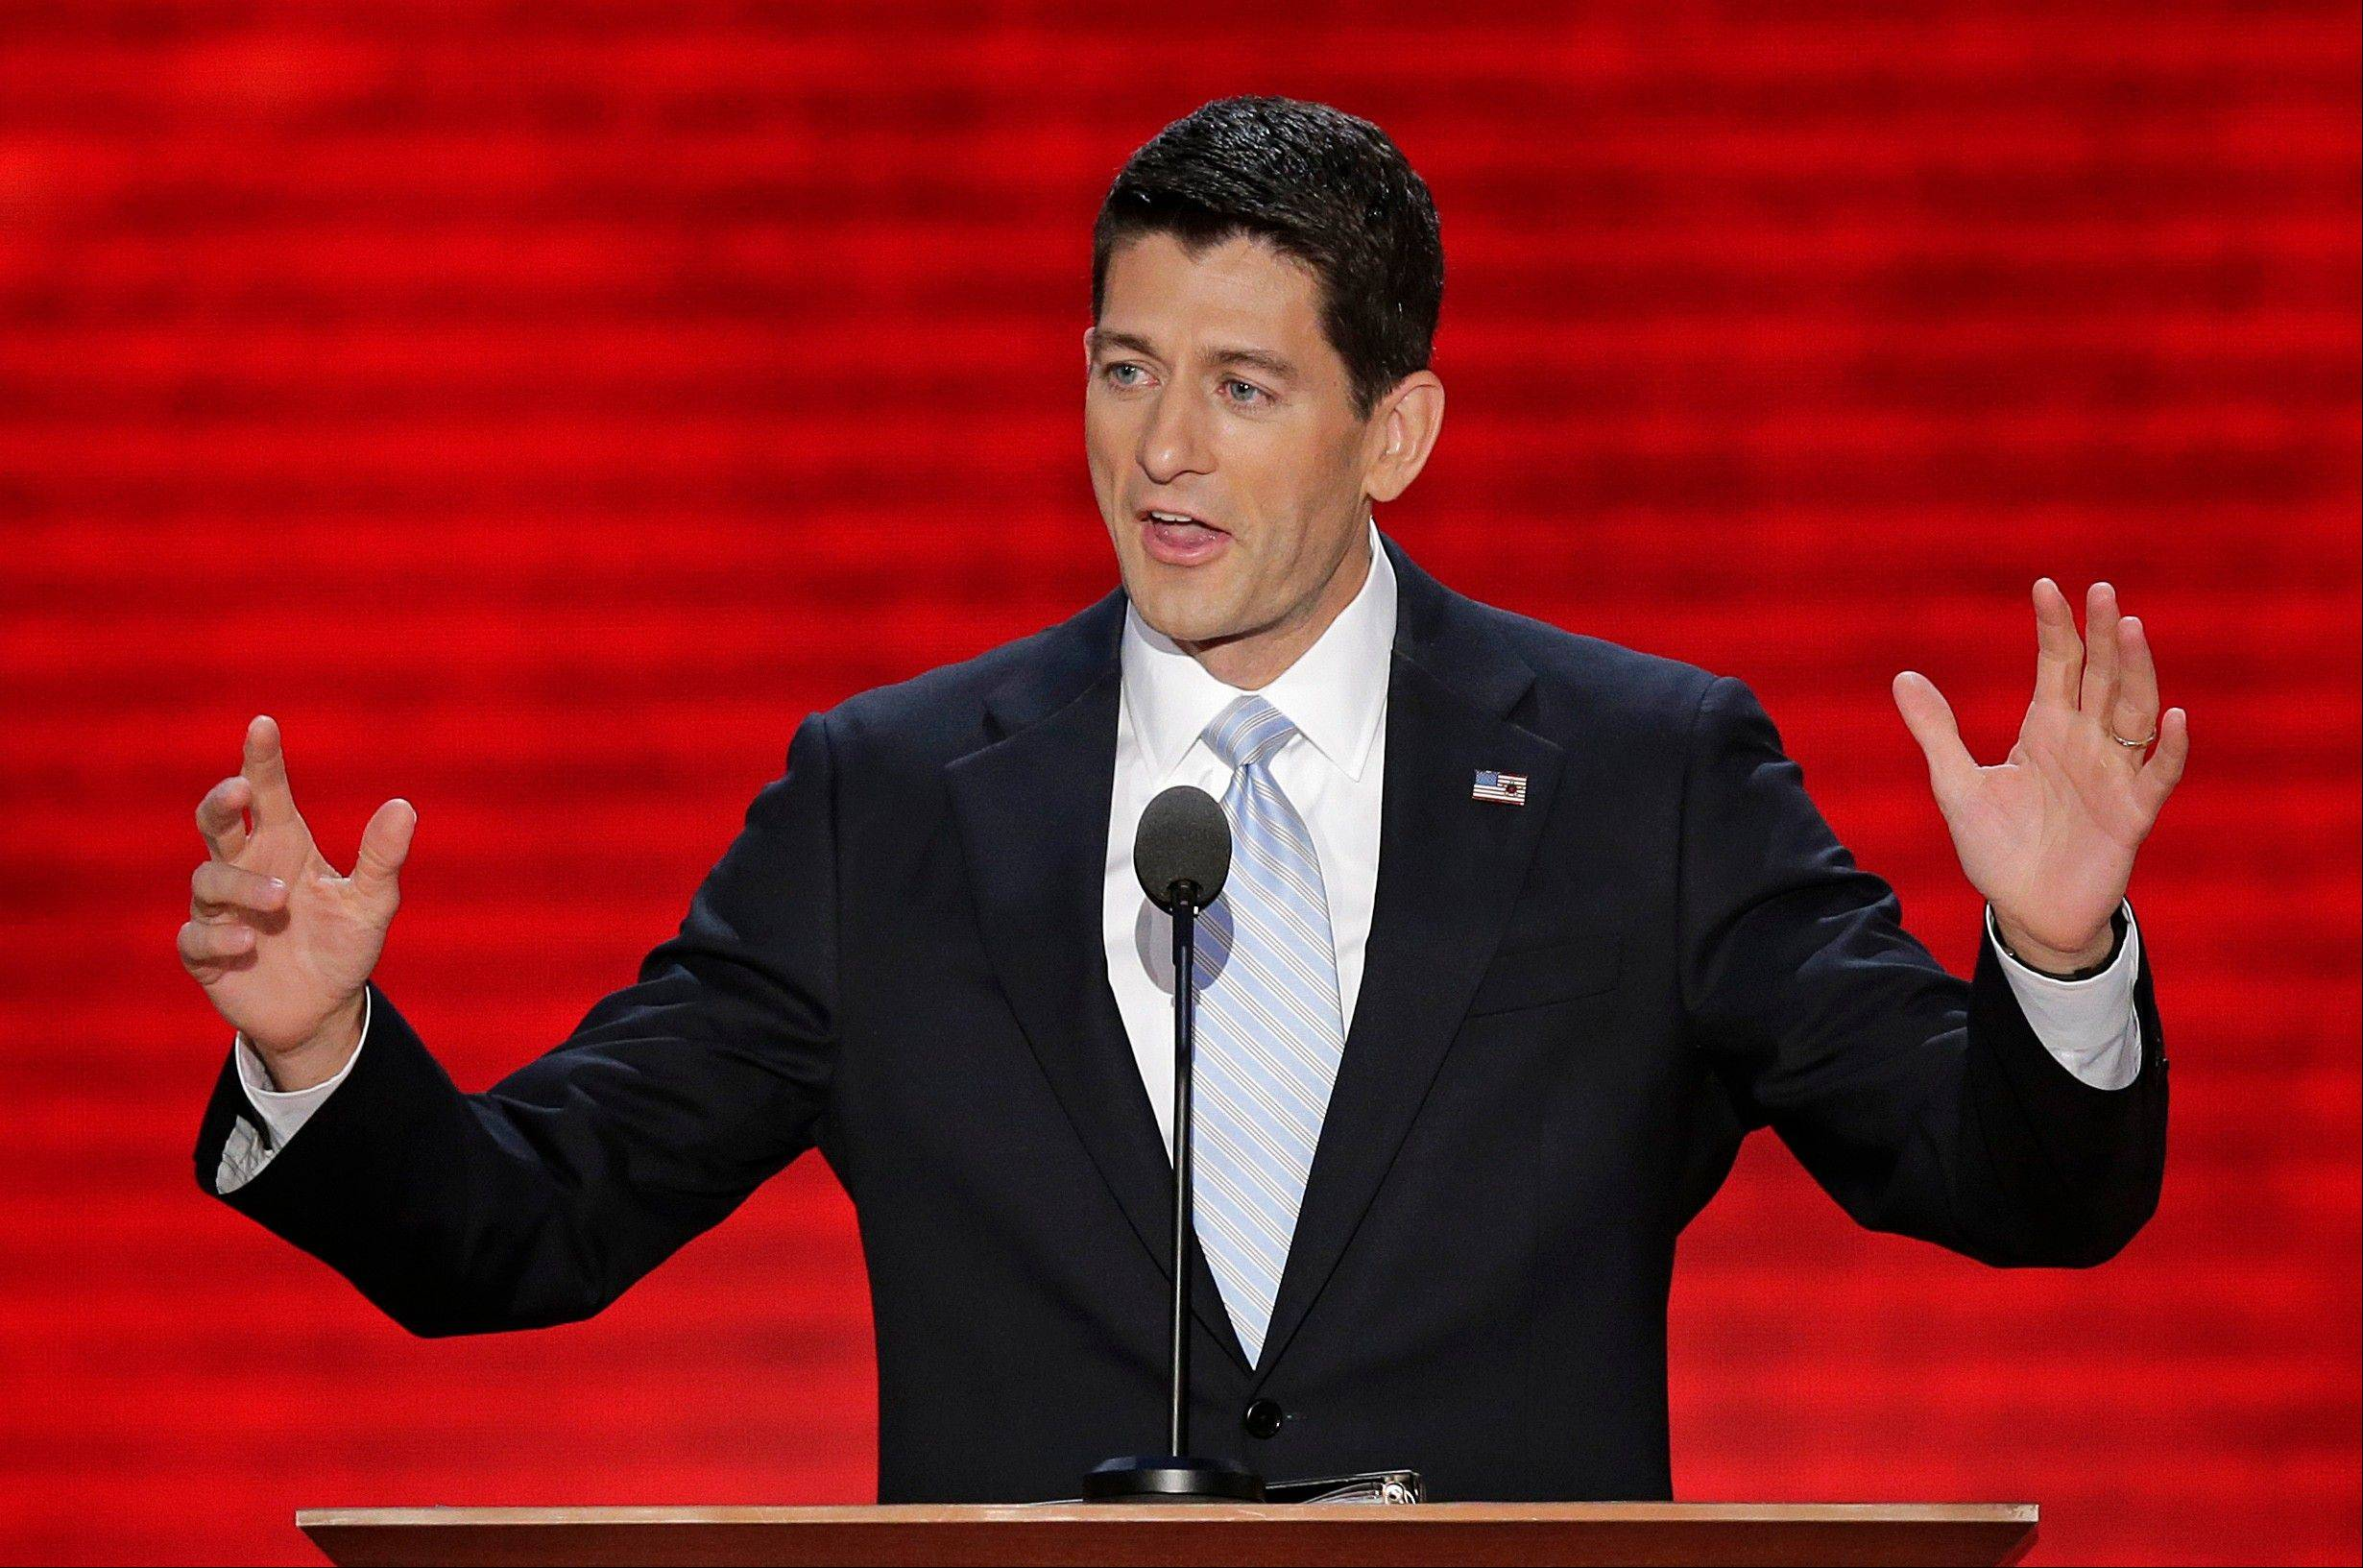 Republican vice presidential nominee, Rep. Paul Ryan addresses the Republican National Convention in Tampa, Fla., on Wednesday, Aug. 29, 2012.